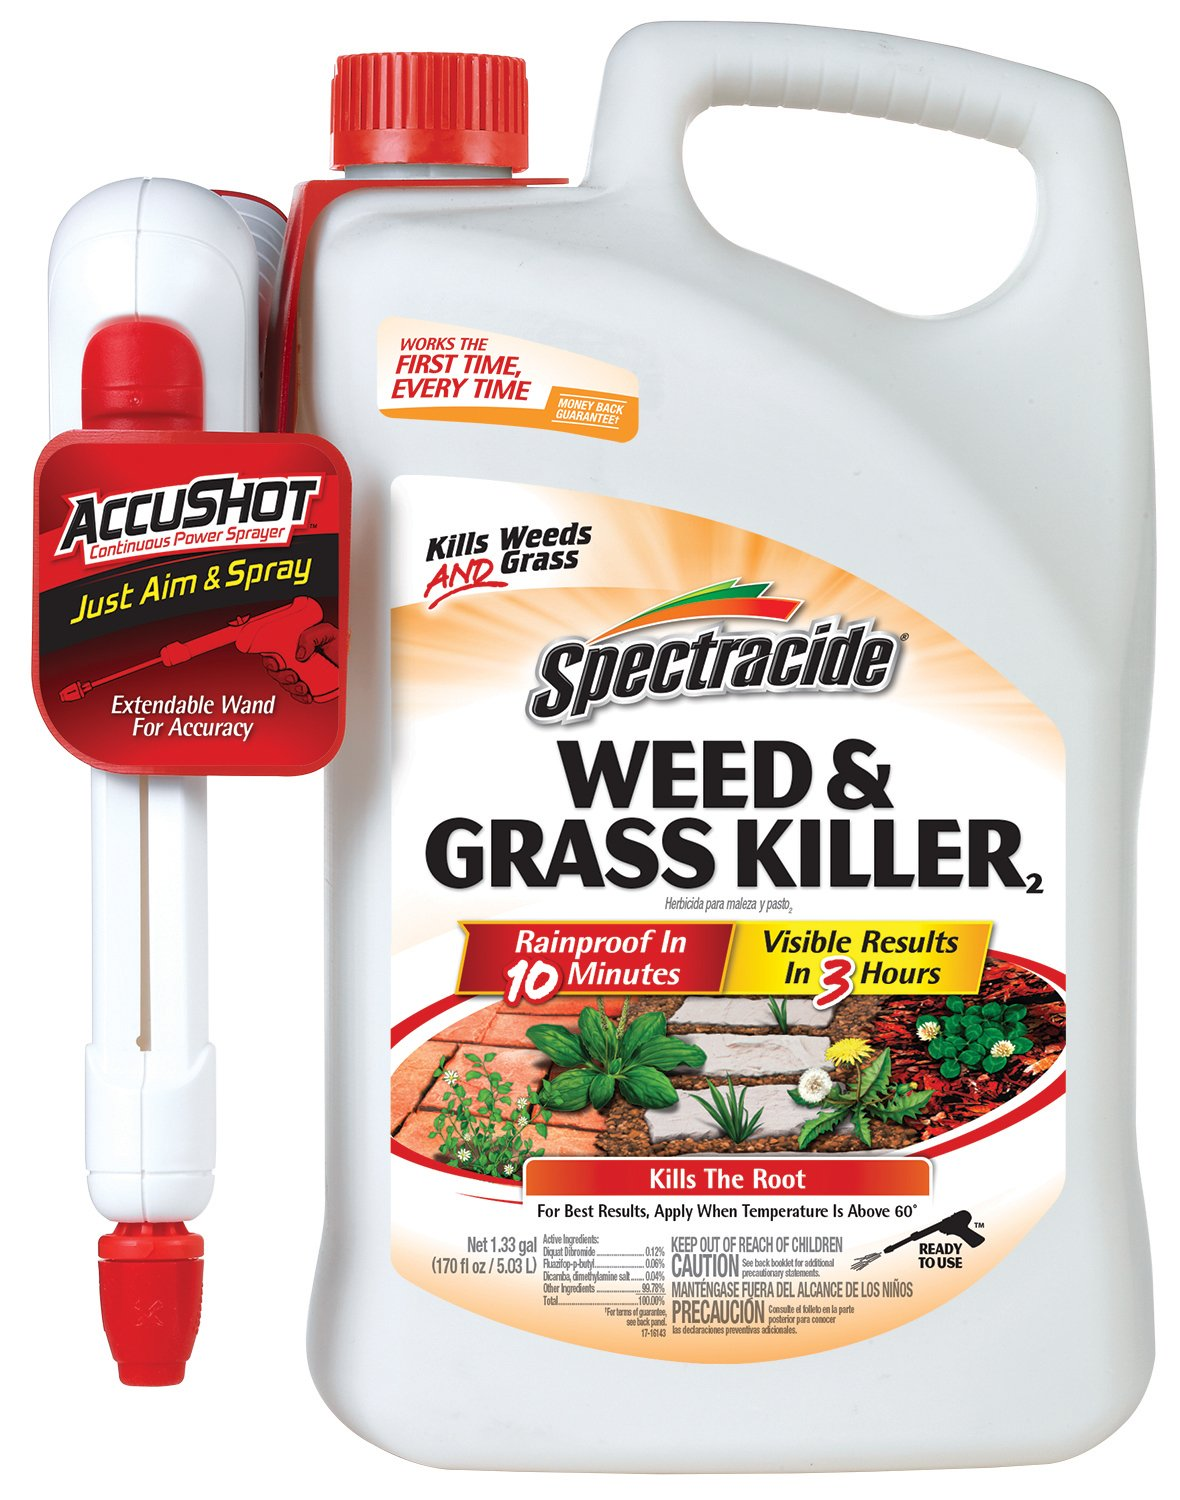 Spectracide Weed & Grass Killer2 (AccuShot Sprayer)